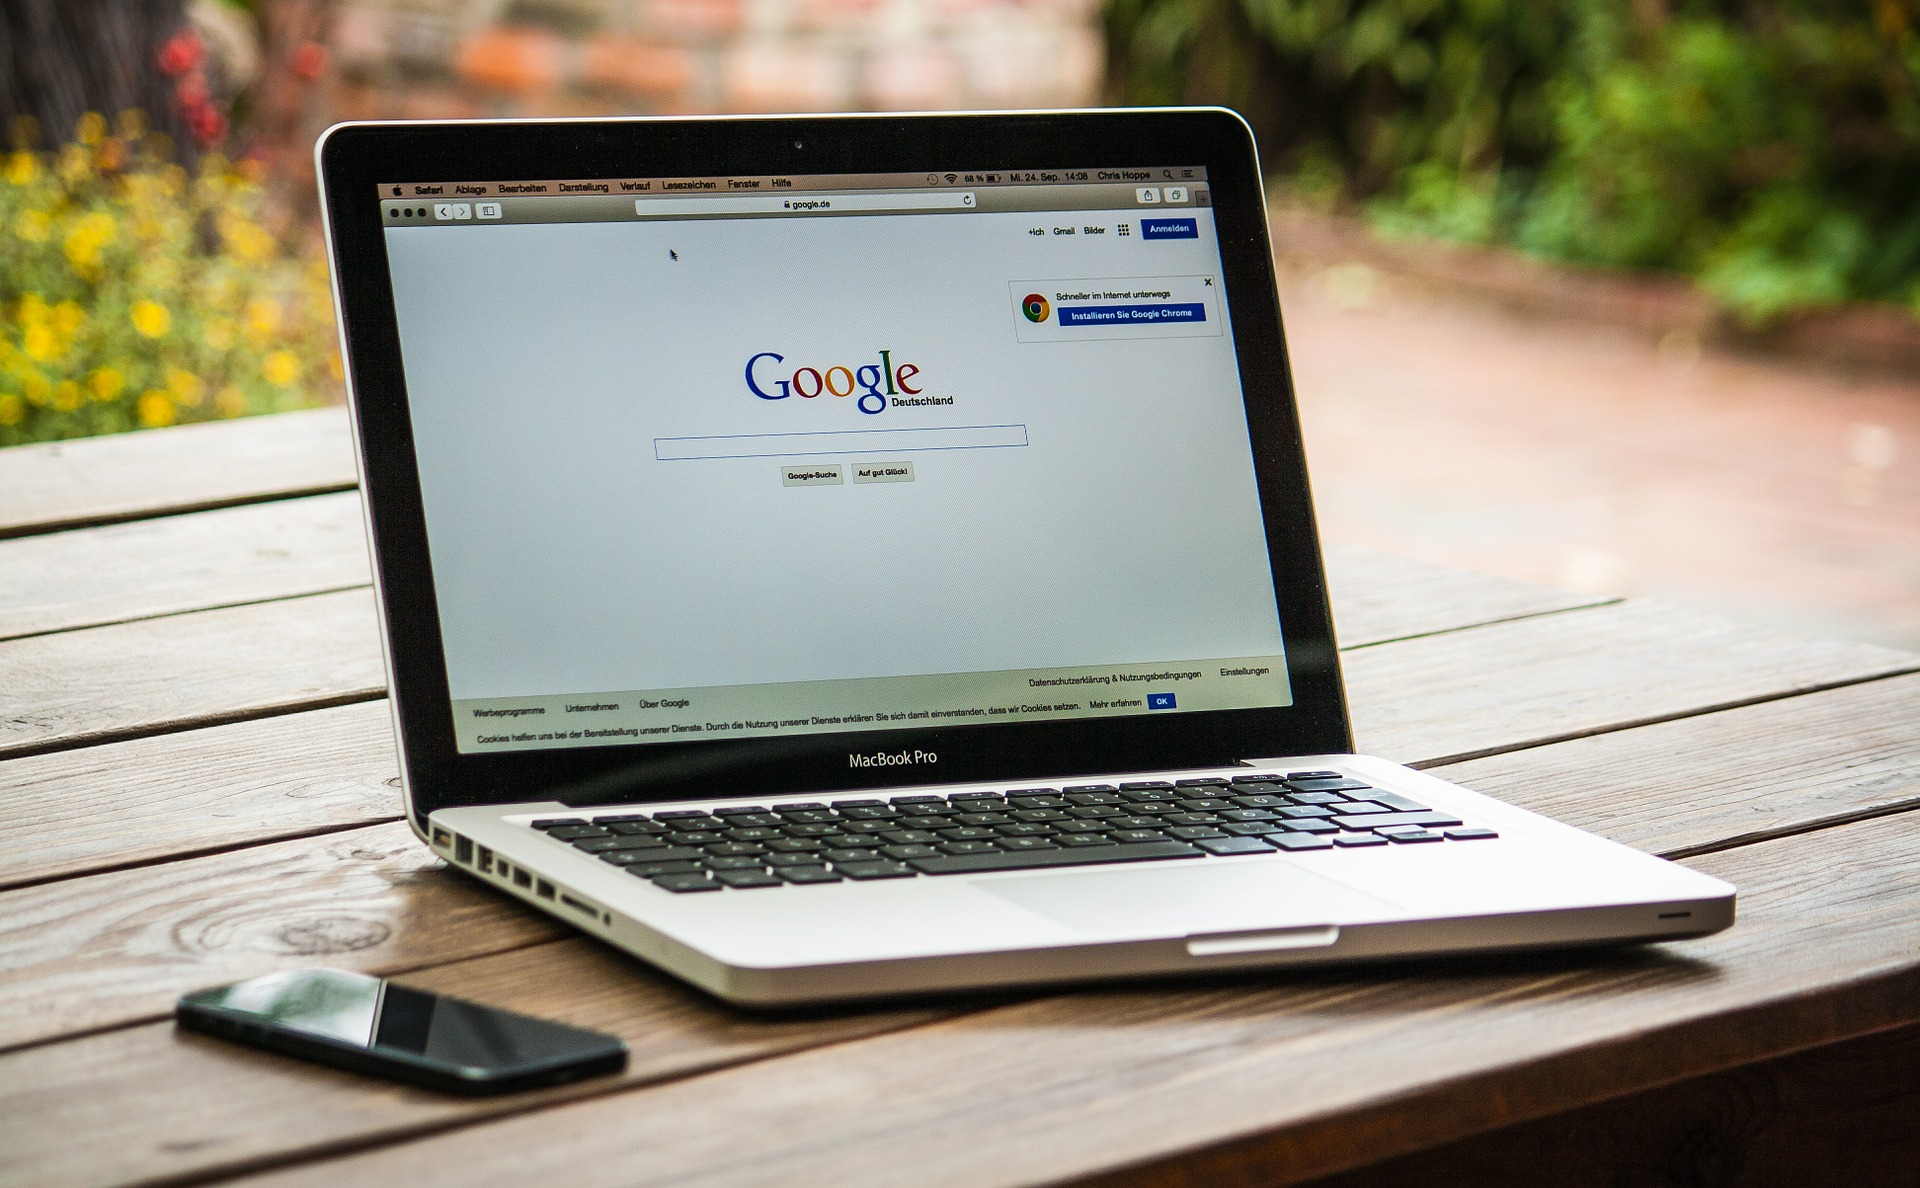 An image of a laptop with google opened on it